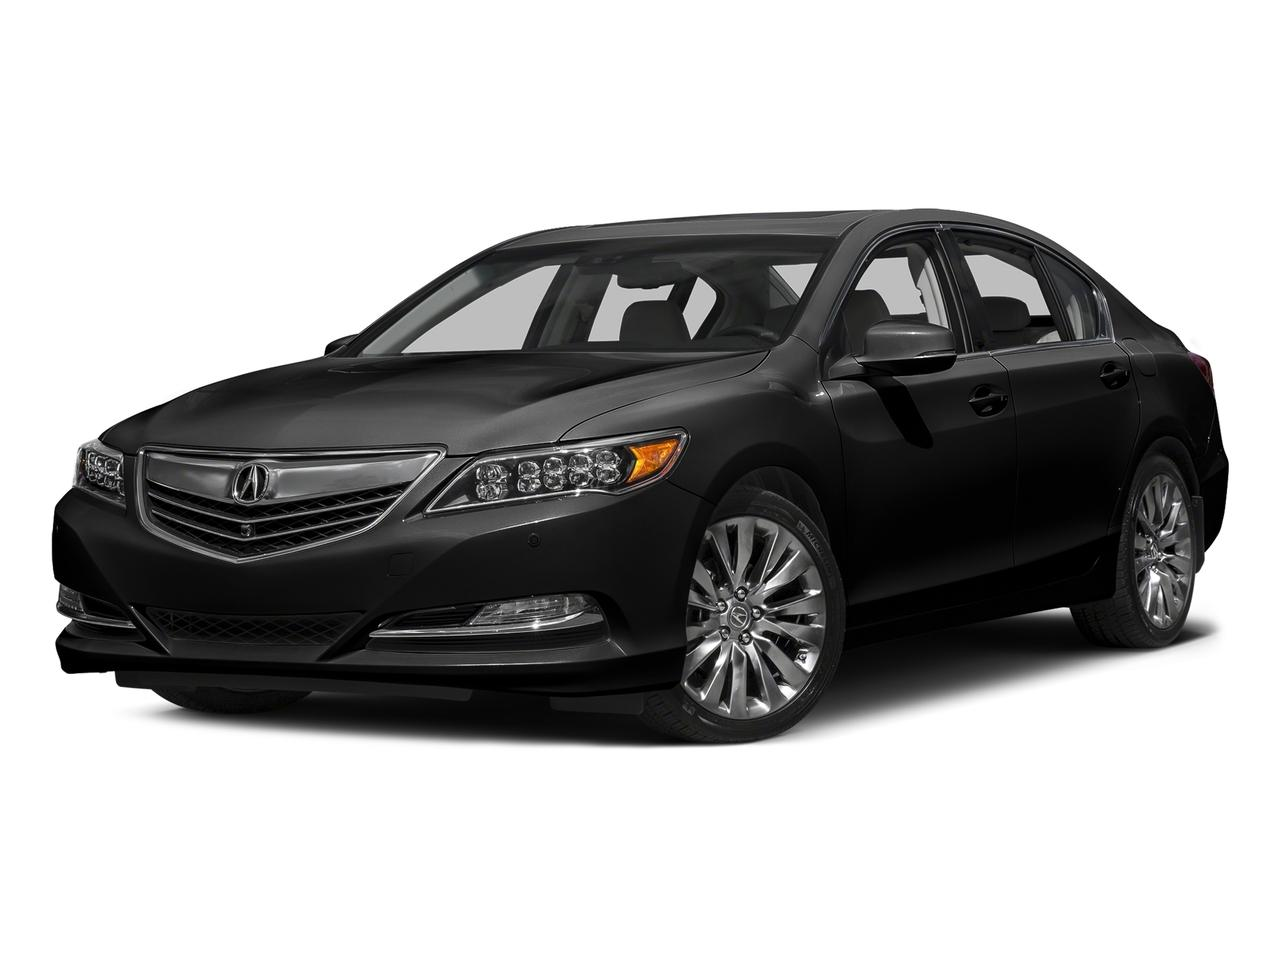 2016 Acura RLX Vehicle Photo in San Angelo, TX 76901